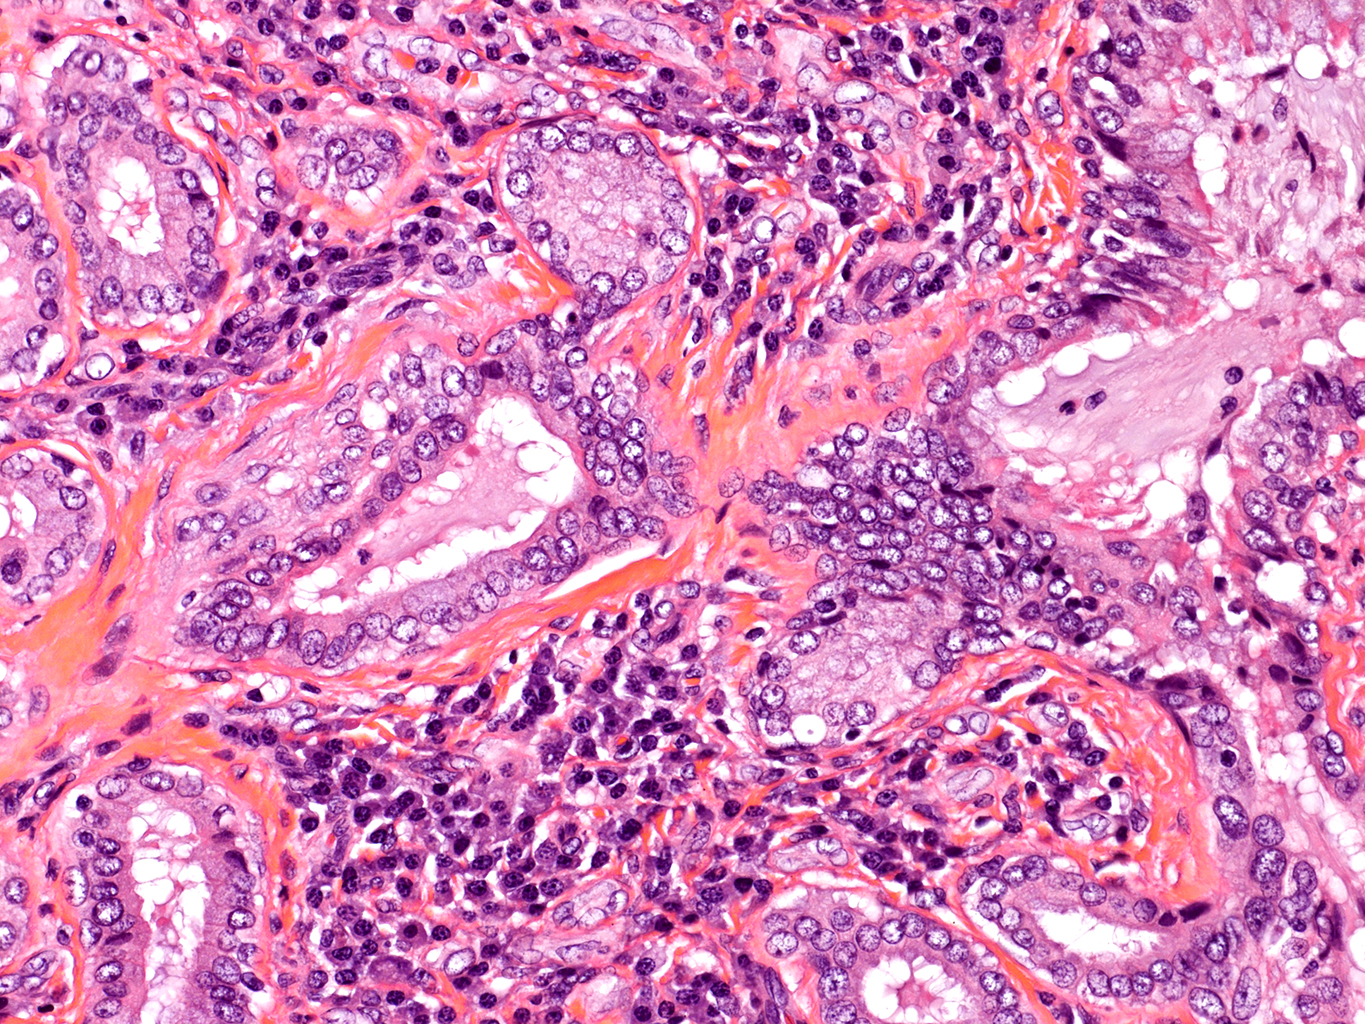 H&E Staining from PBR 3383 Patient with Cystic Fibrosis